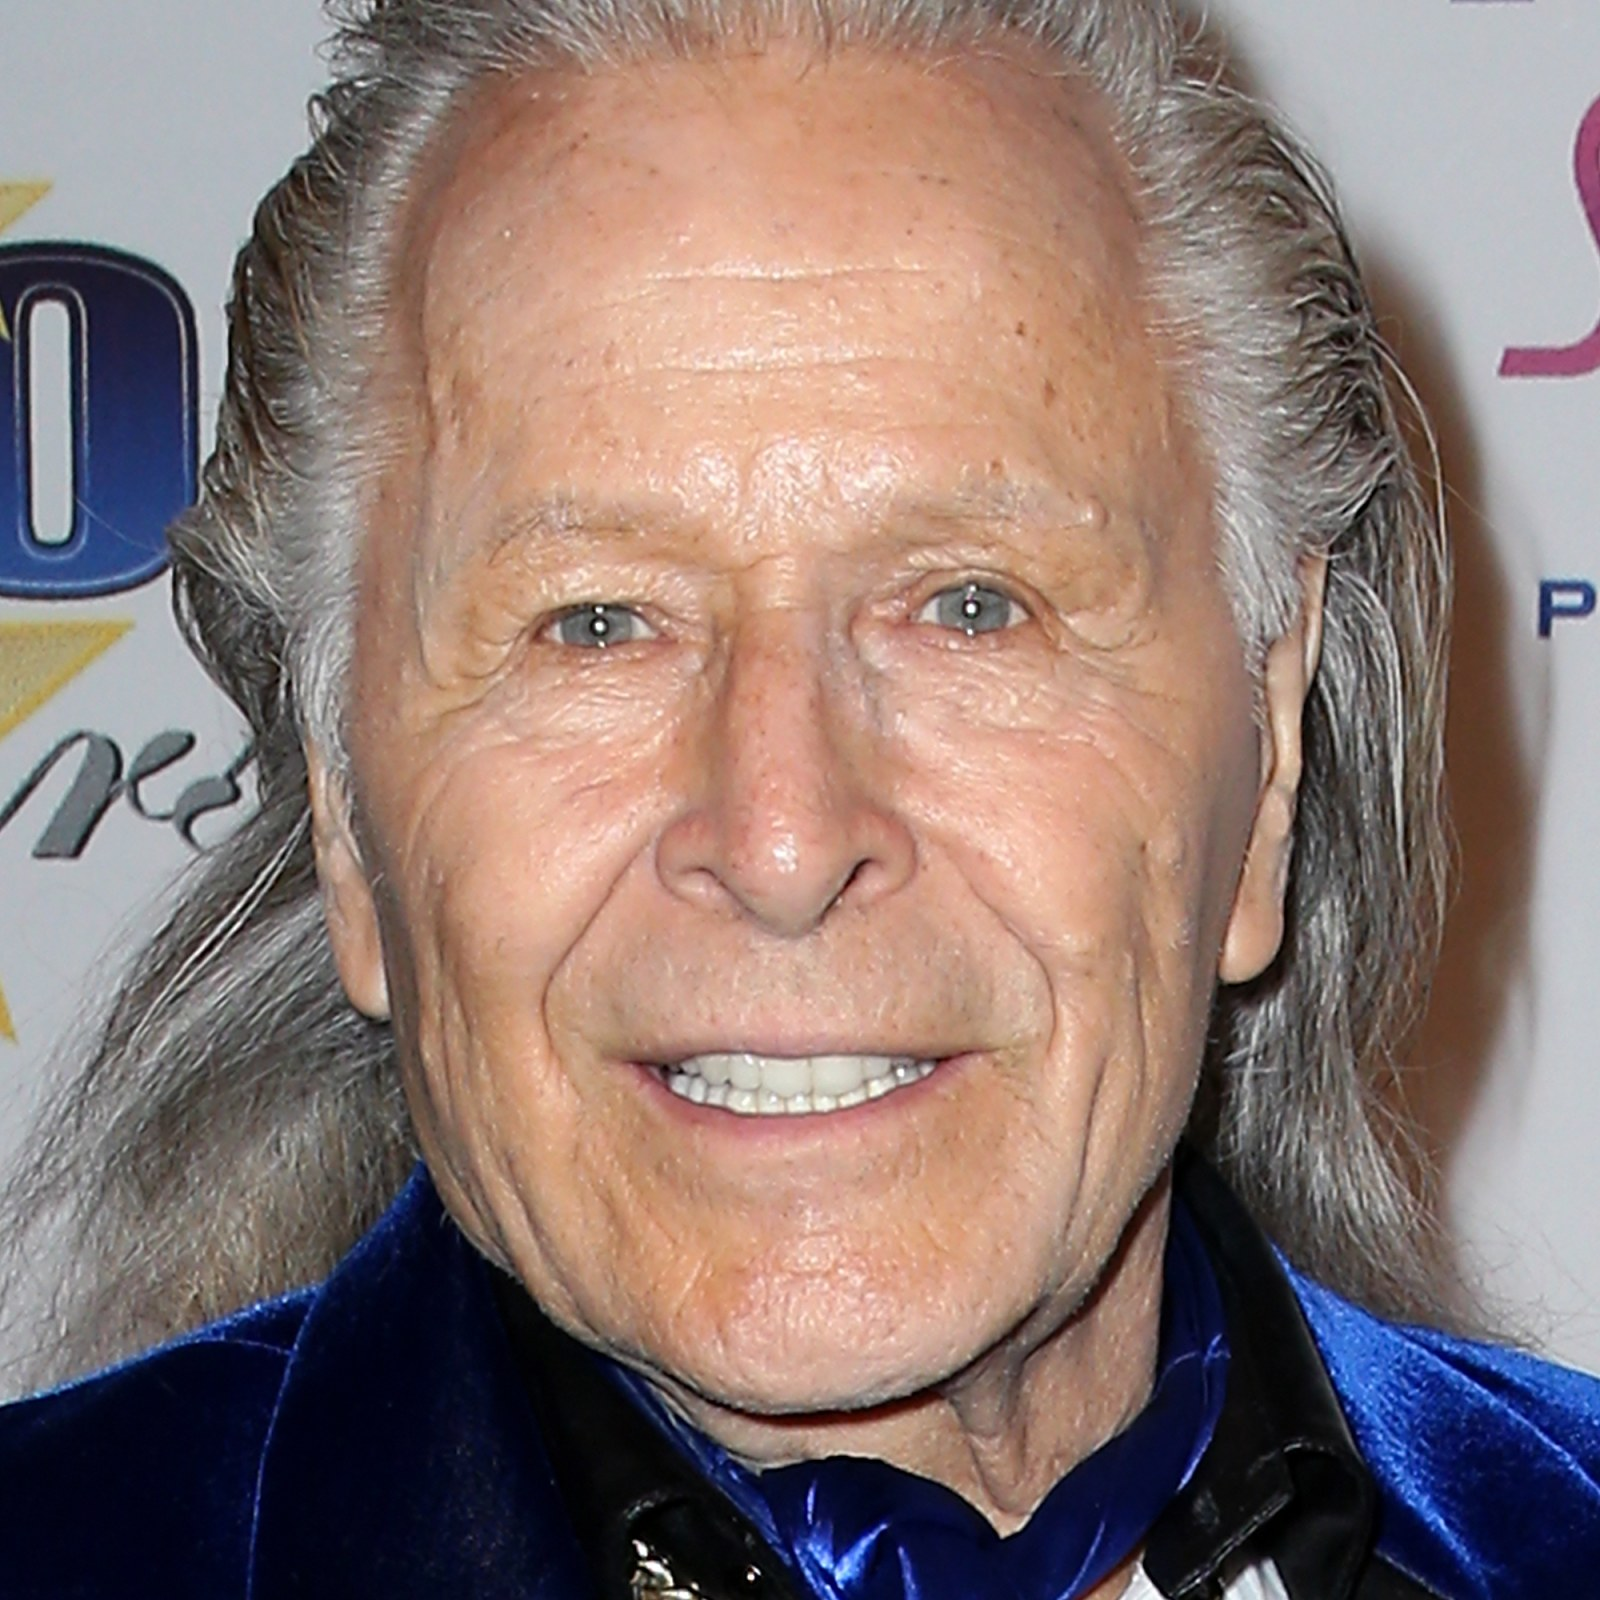 Who Is Peter Nygard And Why Does The Internet Want His Head